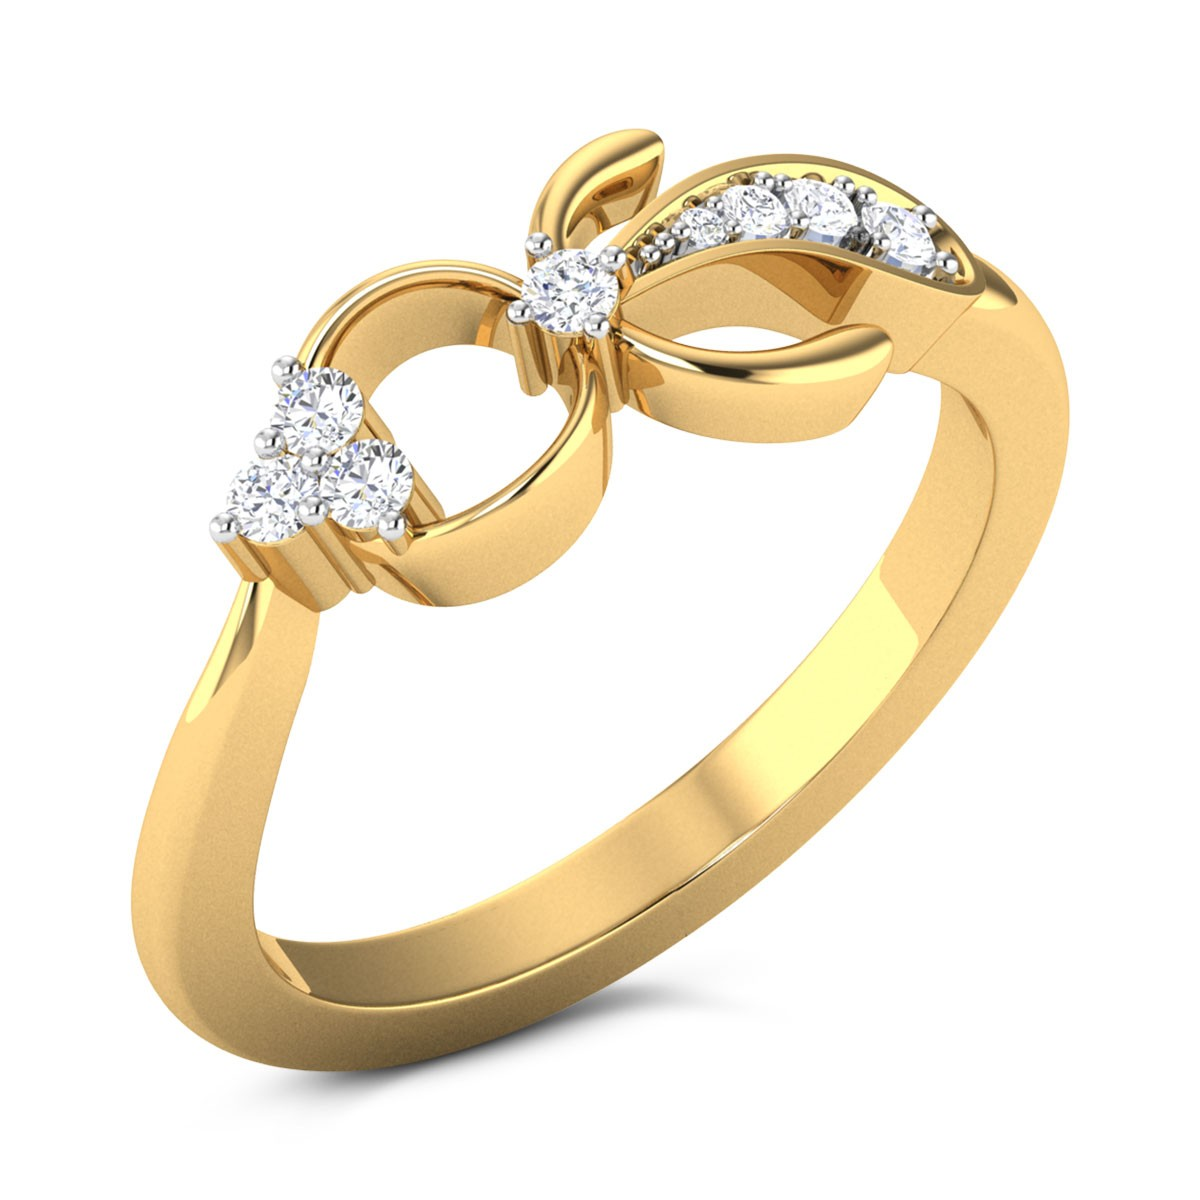 Buy Nelly Diamond Ring in 2.06 Grams Gold Online